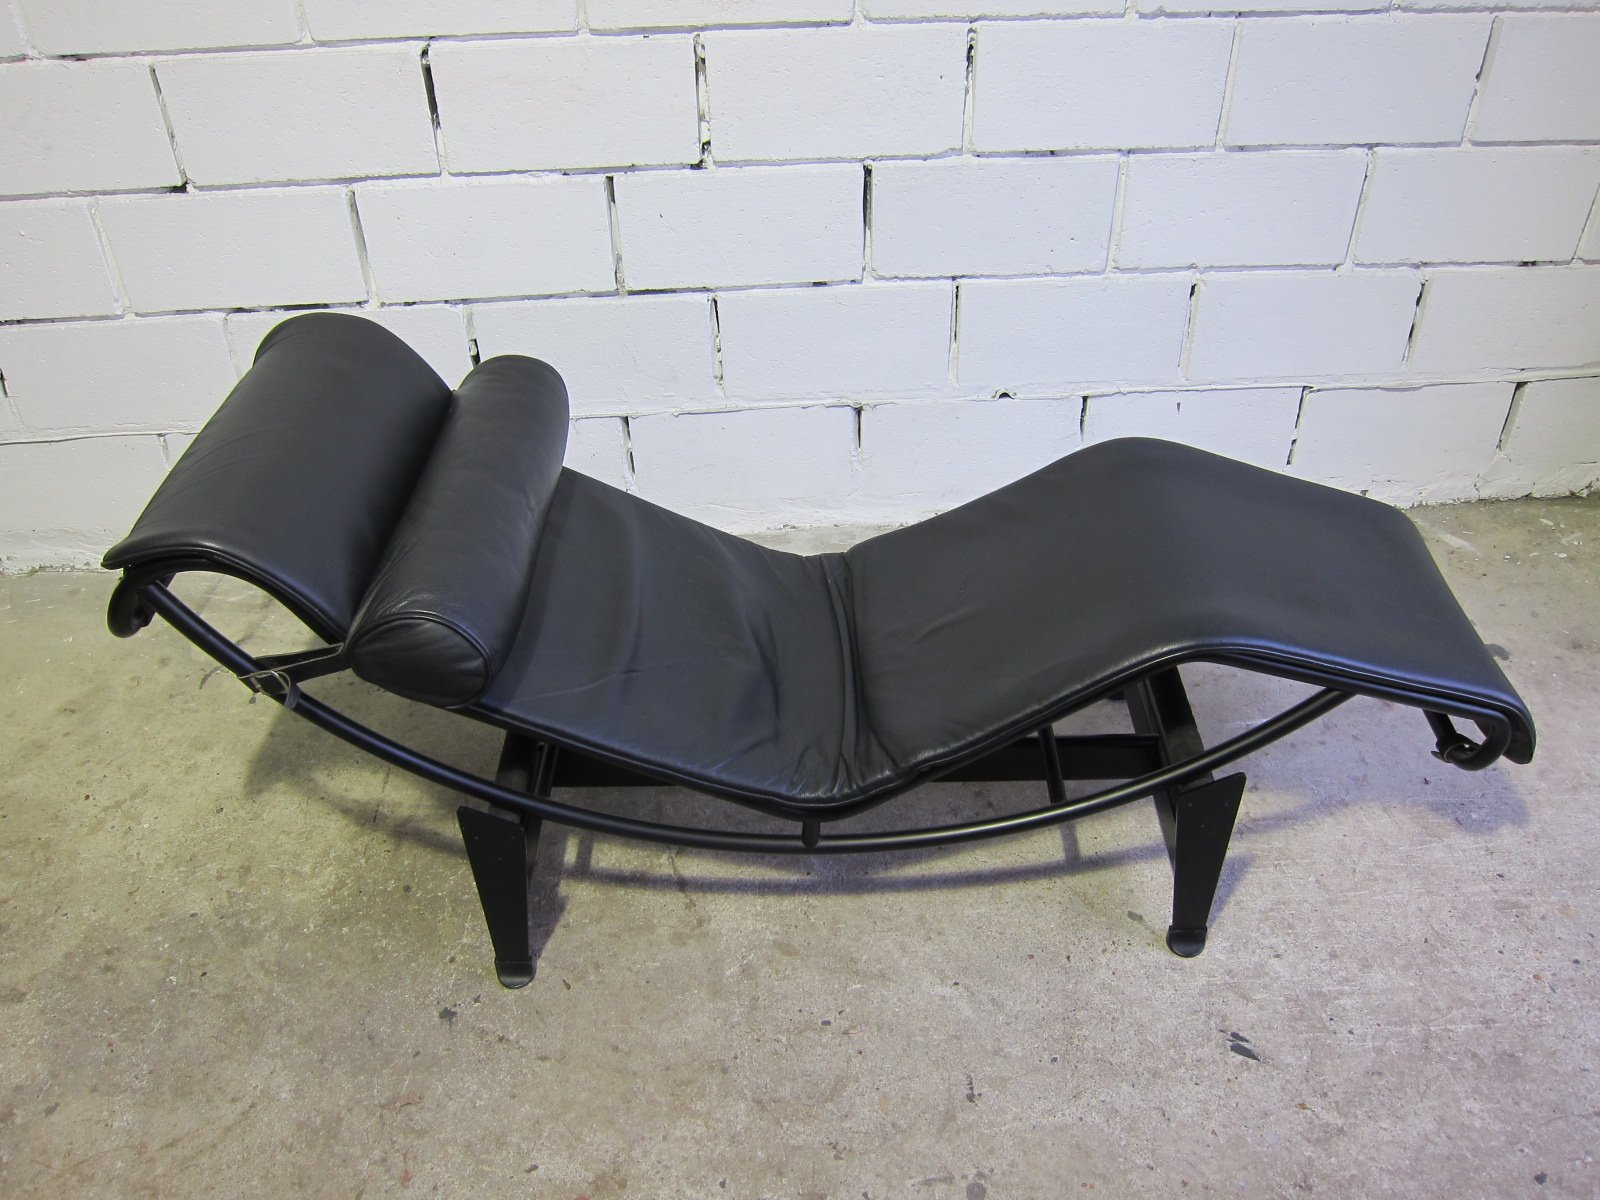 Vintage lc4 chaise lounge by le corbusier for cassina for Chaise corbusier